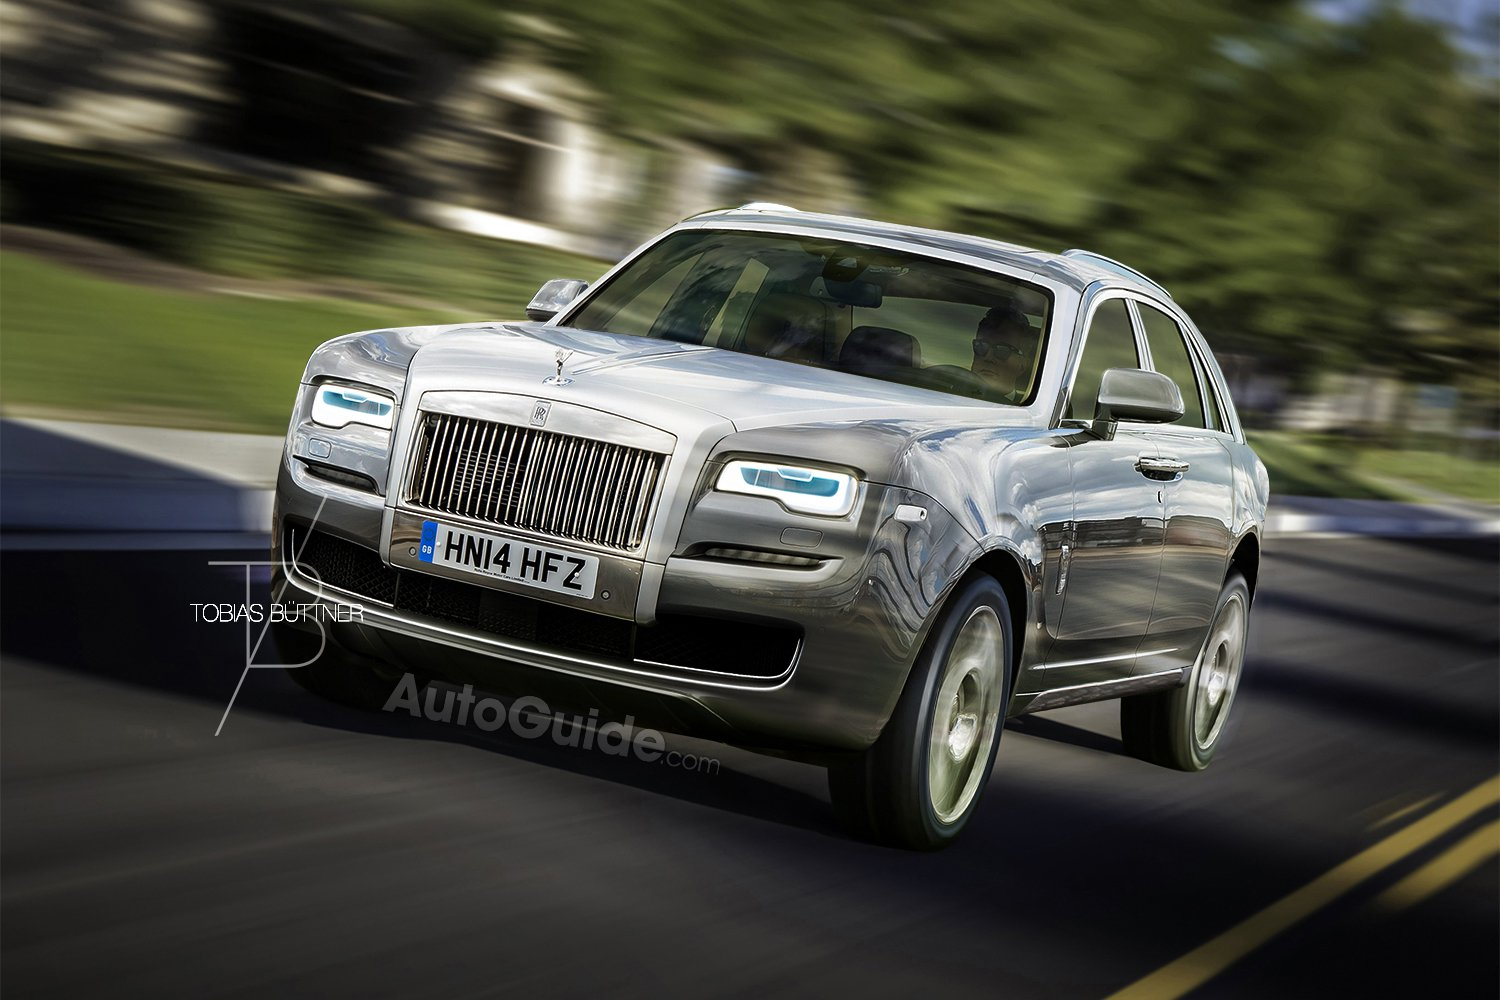 The New Rolls-Royce SUV Could Look Like This